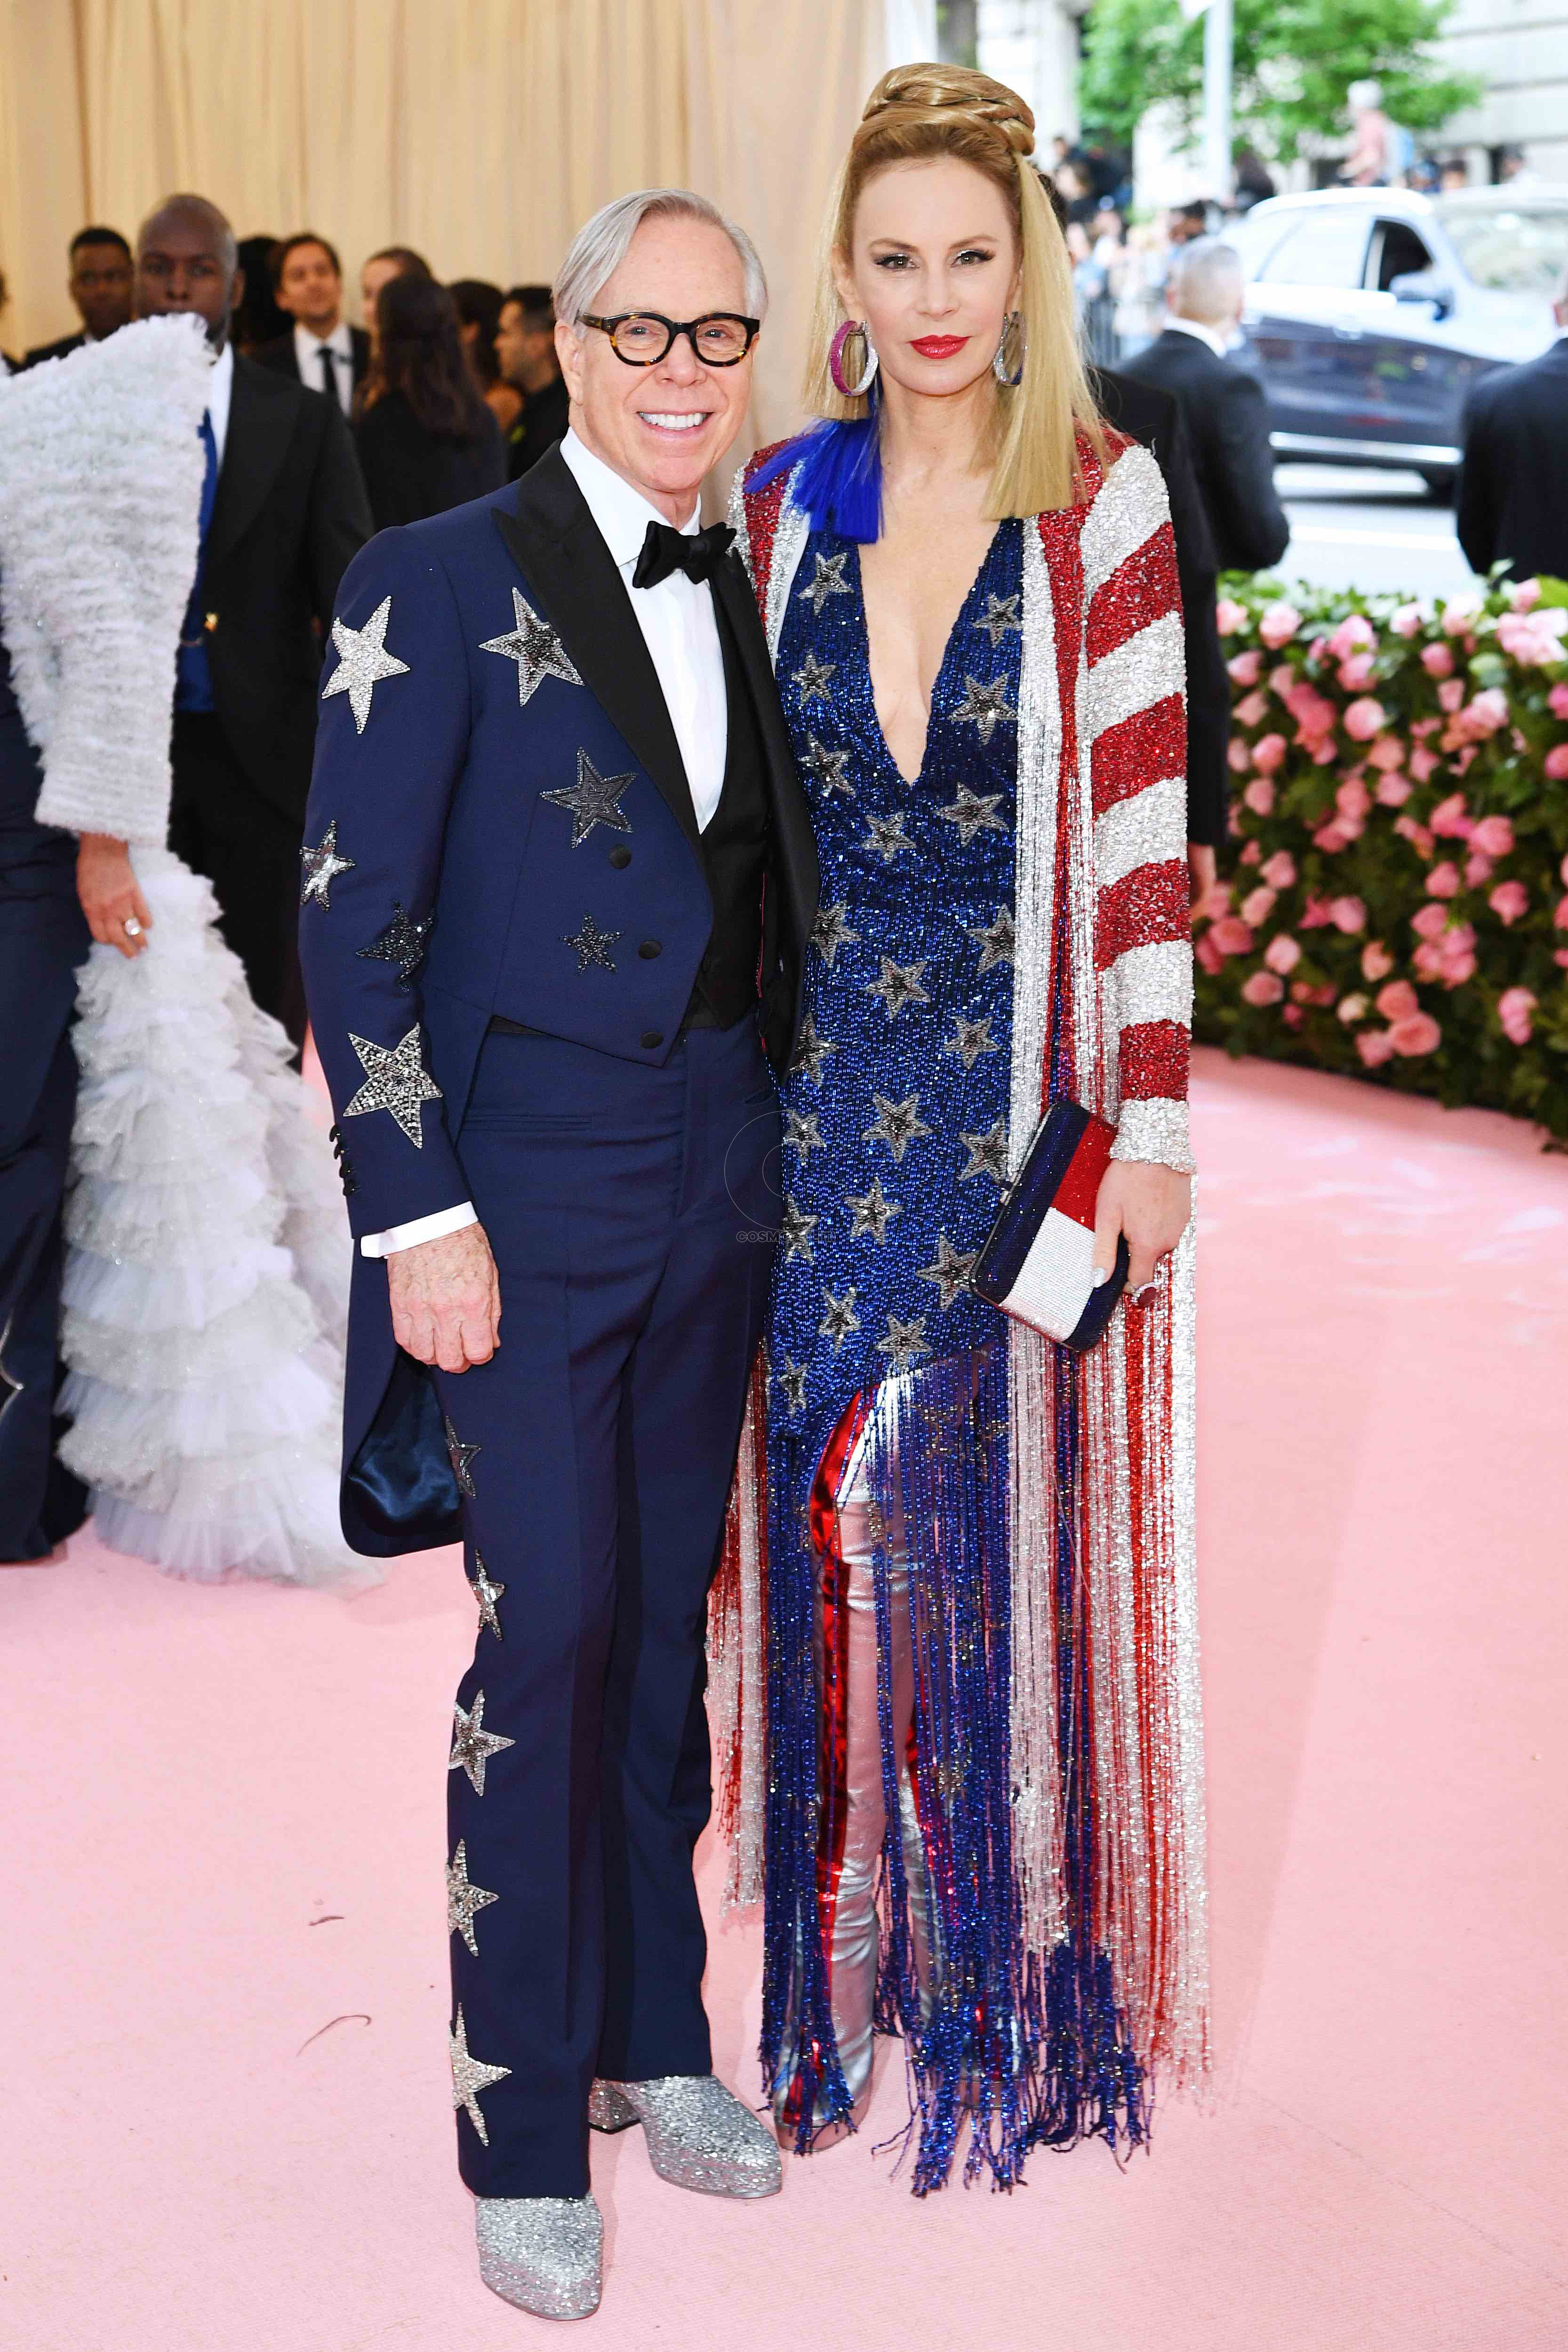 NEW YORK, NEW YORK - MAY 06: Tommy Hilfiger and Dee Hilfiger attend The 2019 Met Gala Celebrating Camp: Notes on Fashion at Metropolitan Museum of Art on May 06, 2019 in New York City. (Photo by Dimitrios Kambouris/Getty Images for The Met Museum/Vogue)